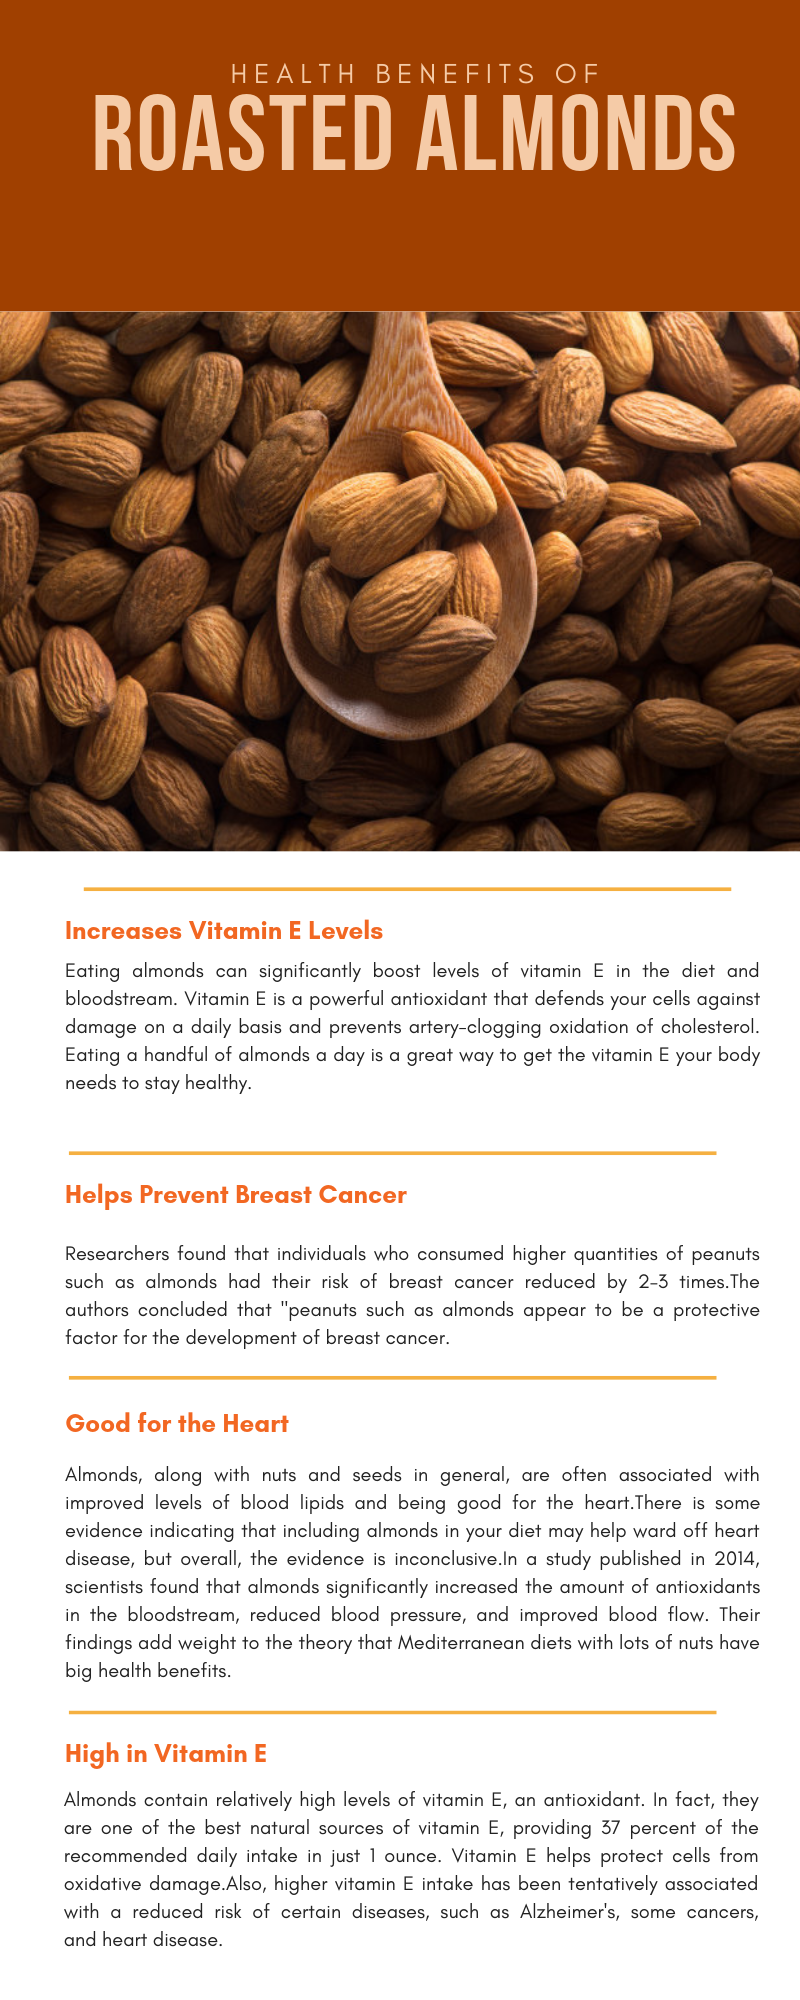 Roasted almonds are rich in mono-saturated fats, potassium, protein, and folic acid which are all good for your heart. Live long and stay strong by choosing to eat almonds every day. Roasted almonds are good for your skin too! They are rich in vitamin E which makes skin smooth and soft, and helps to control breakouts.